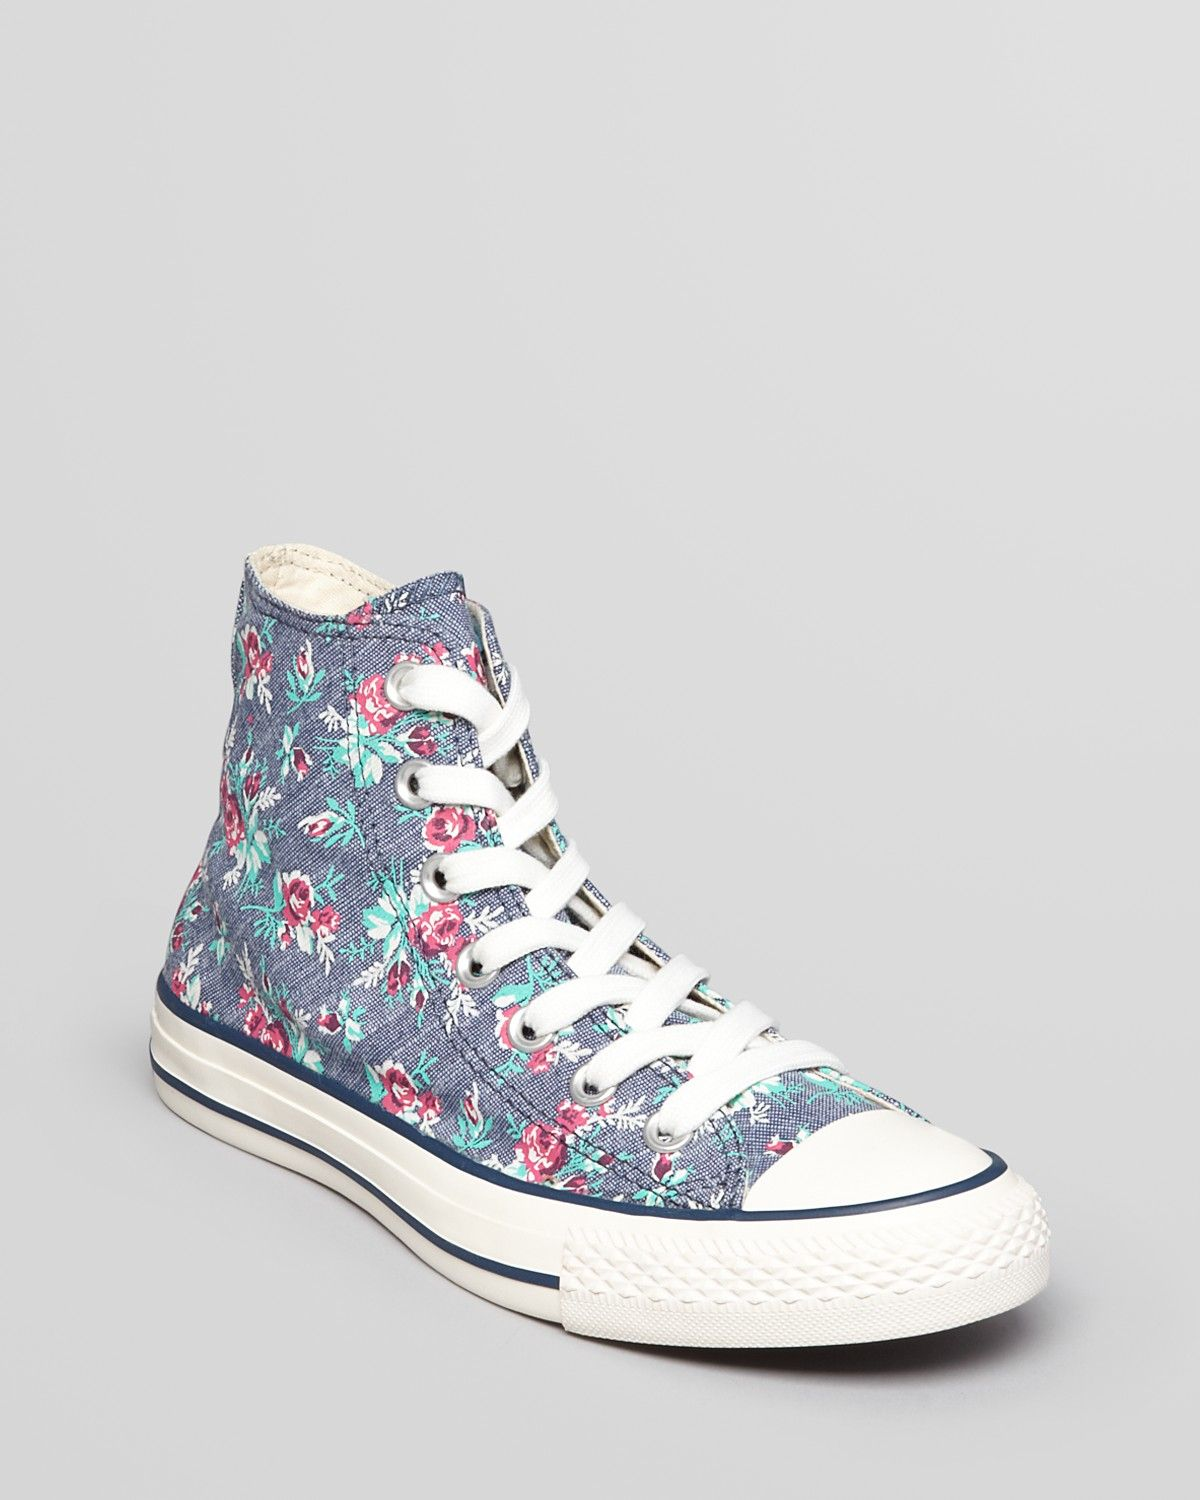 07f01001eb9ab2 Converse Lace Up High Top Sneakers - All Star Floral Print ...